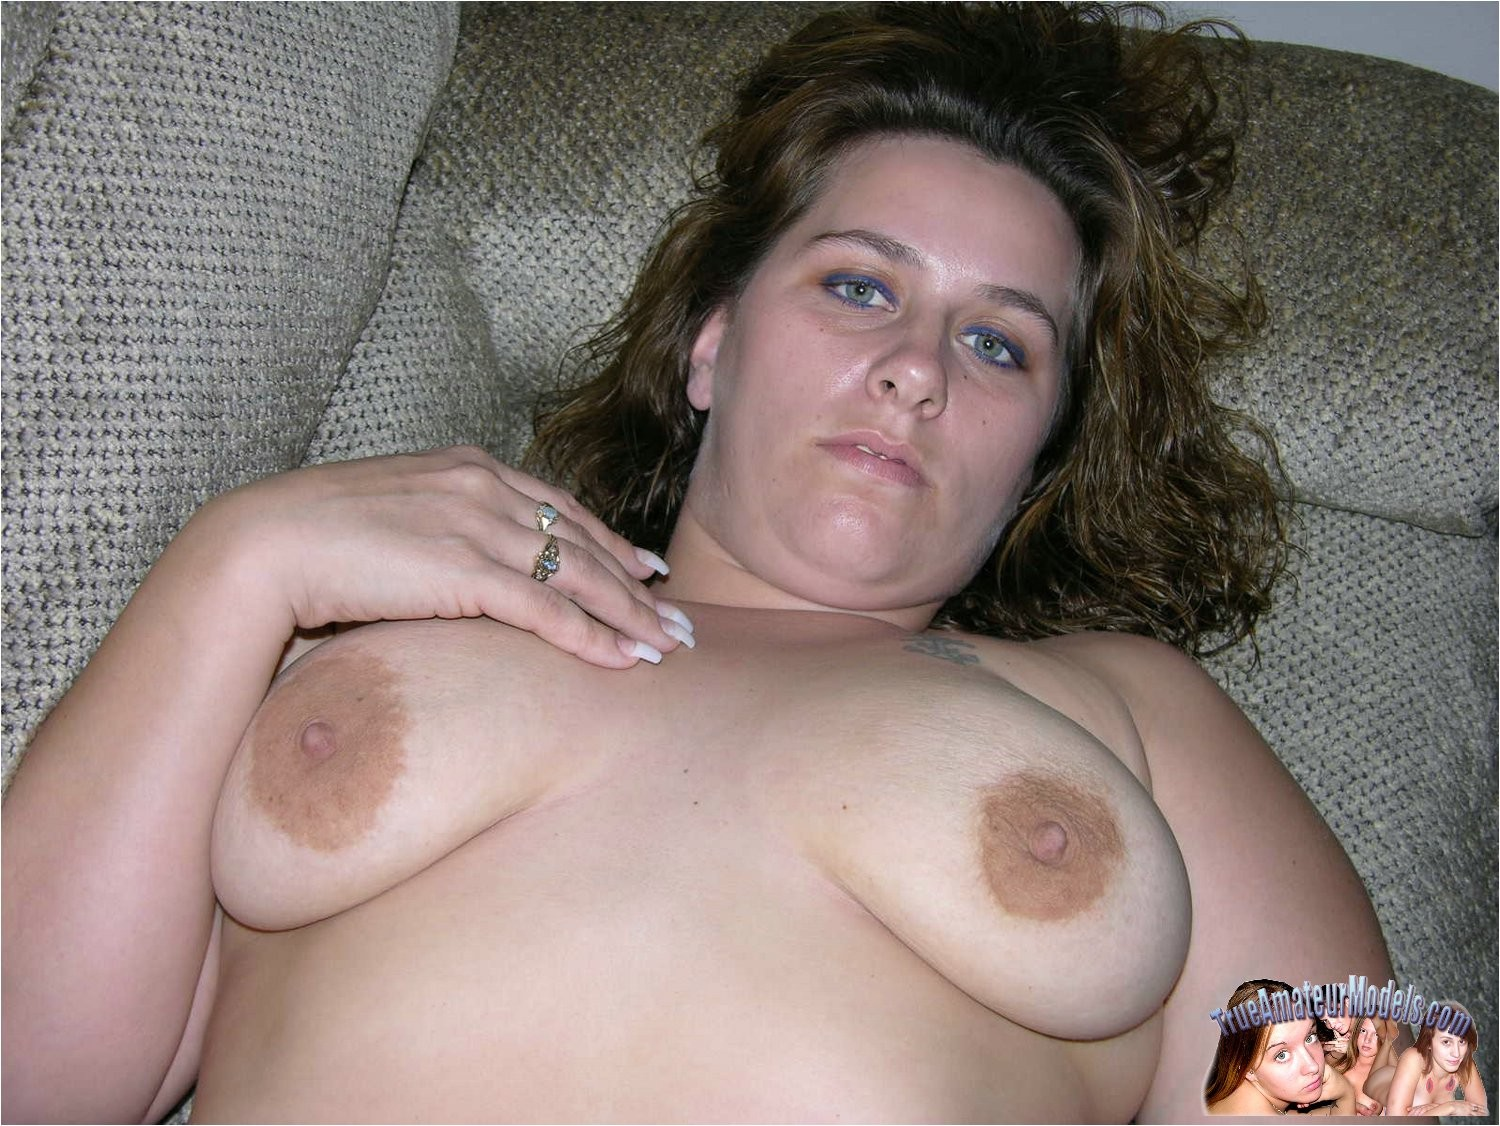 Right! Real amateur chubby women